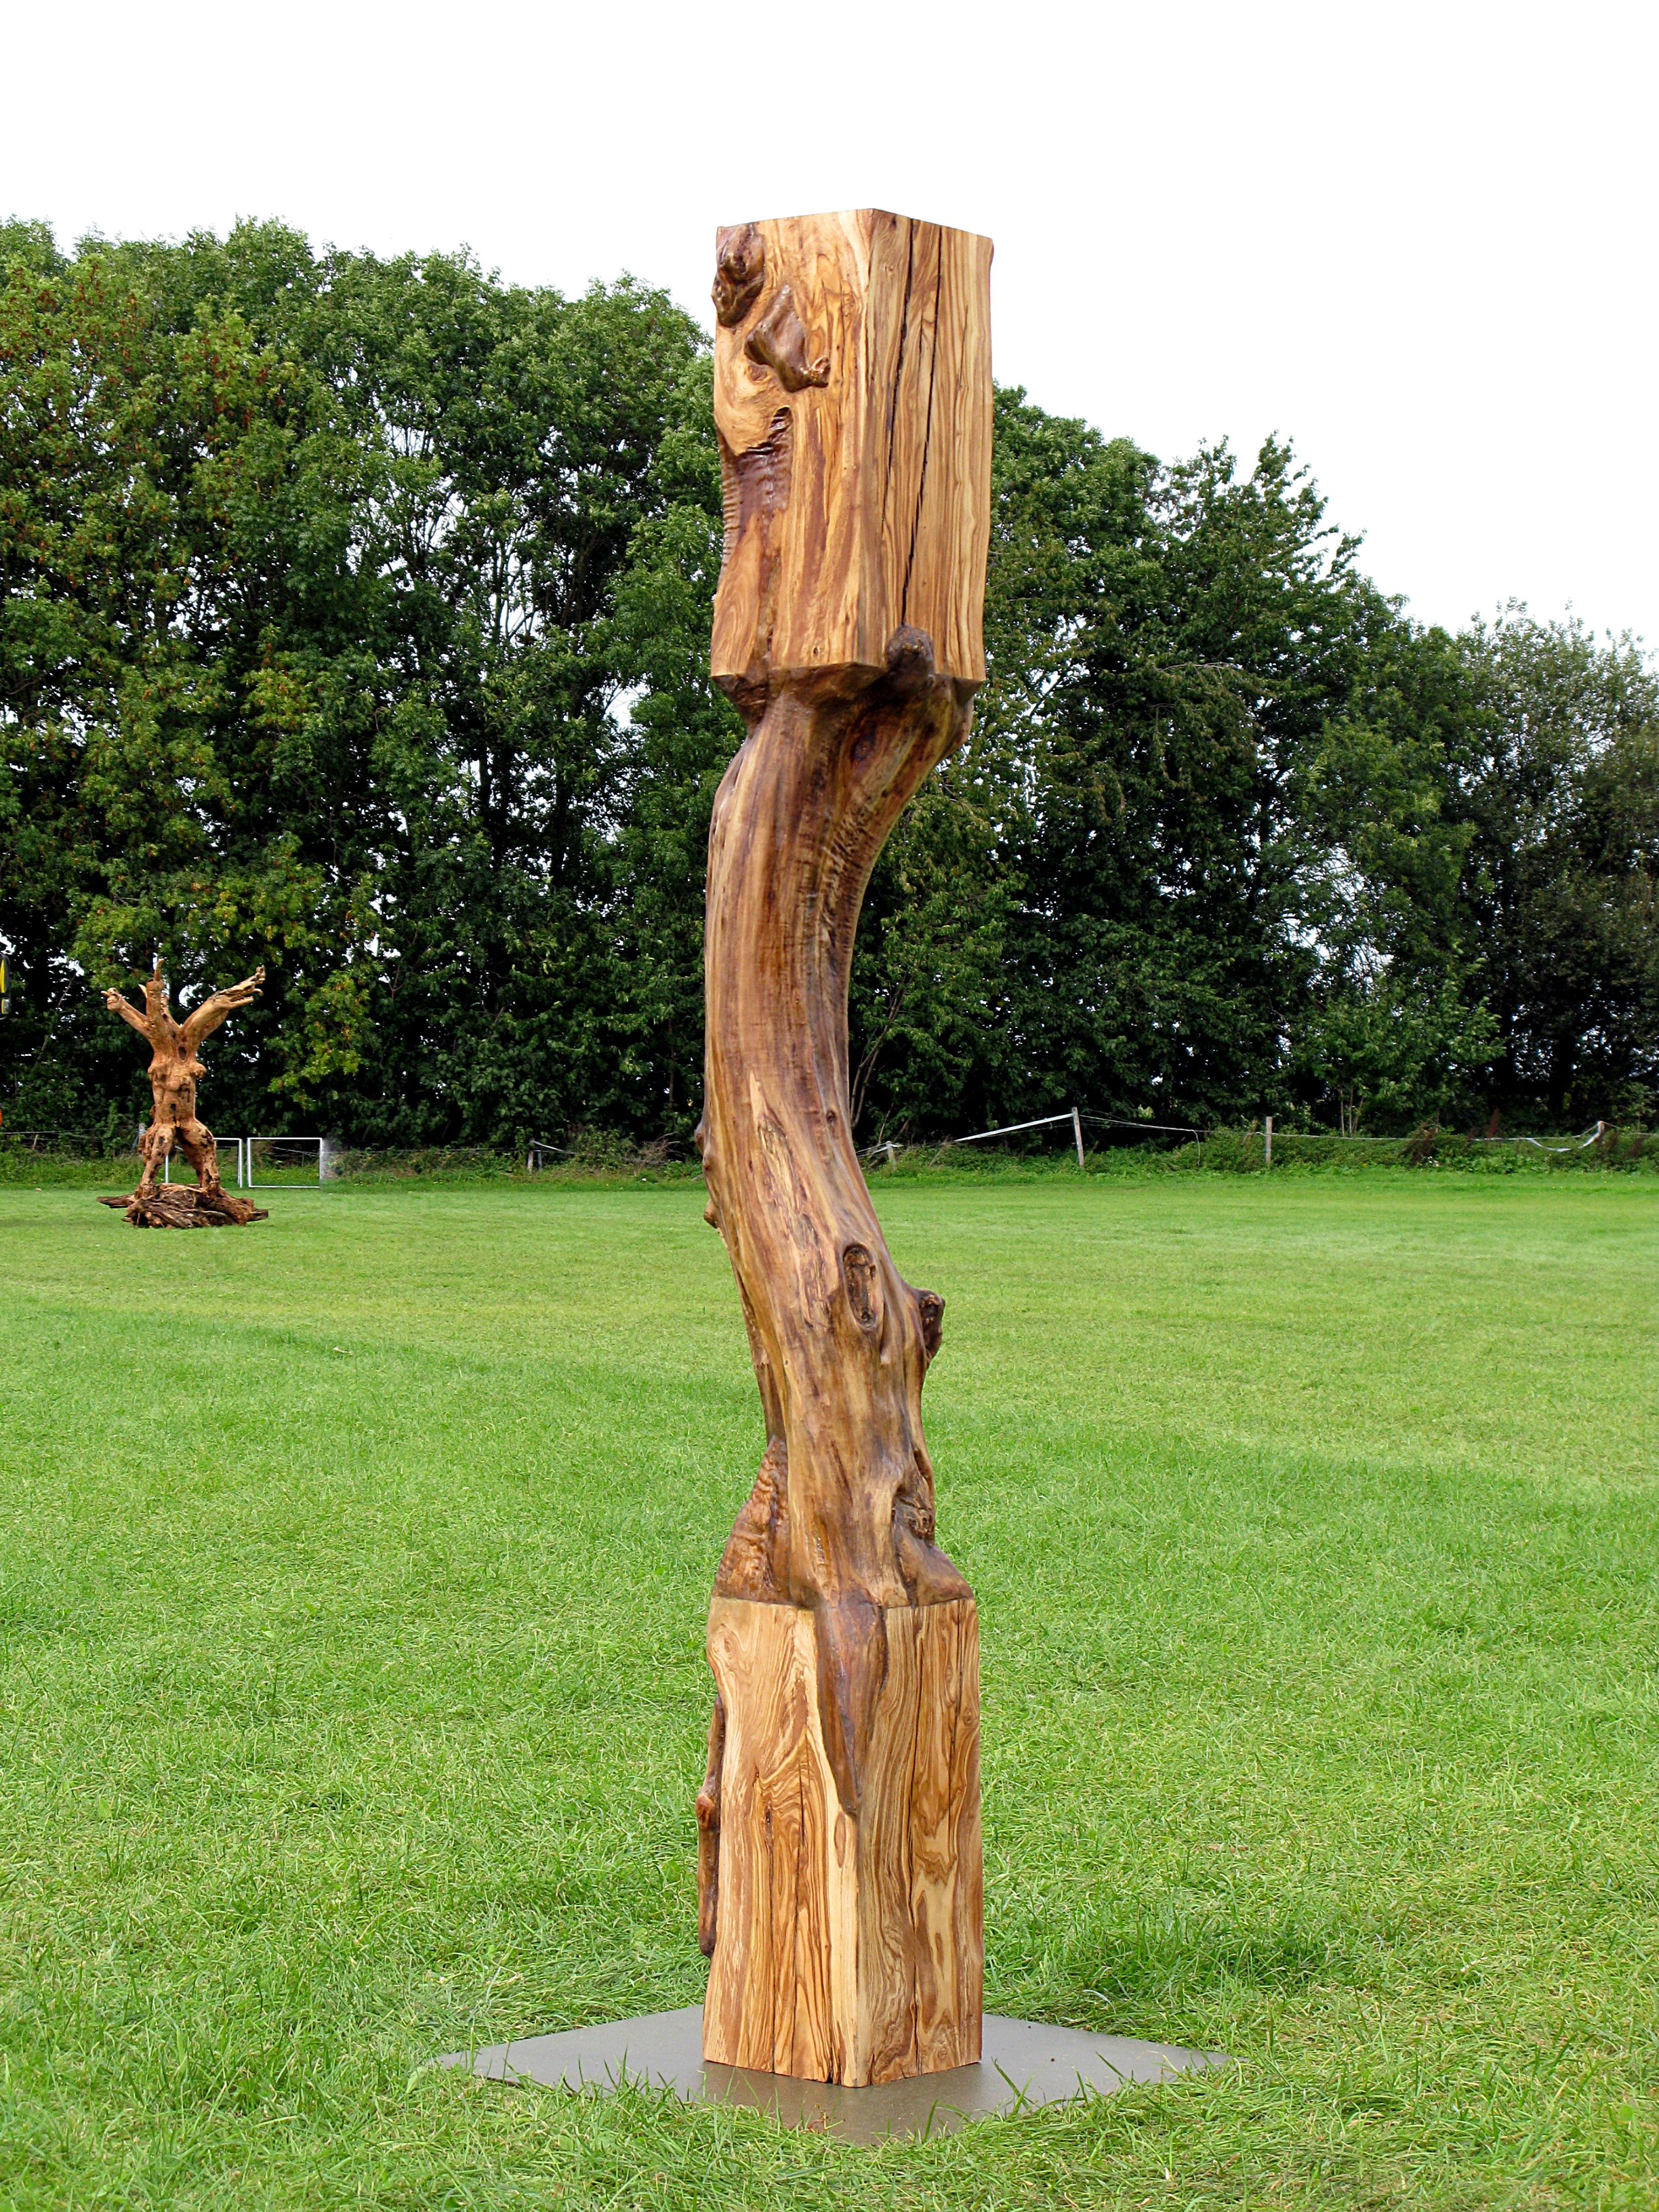 """Two Worlds"", 2011, olive wood, 370 cm x 170 cm x 150 cm, Copyright: Mirek Struzik (private collection)"